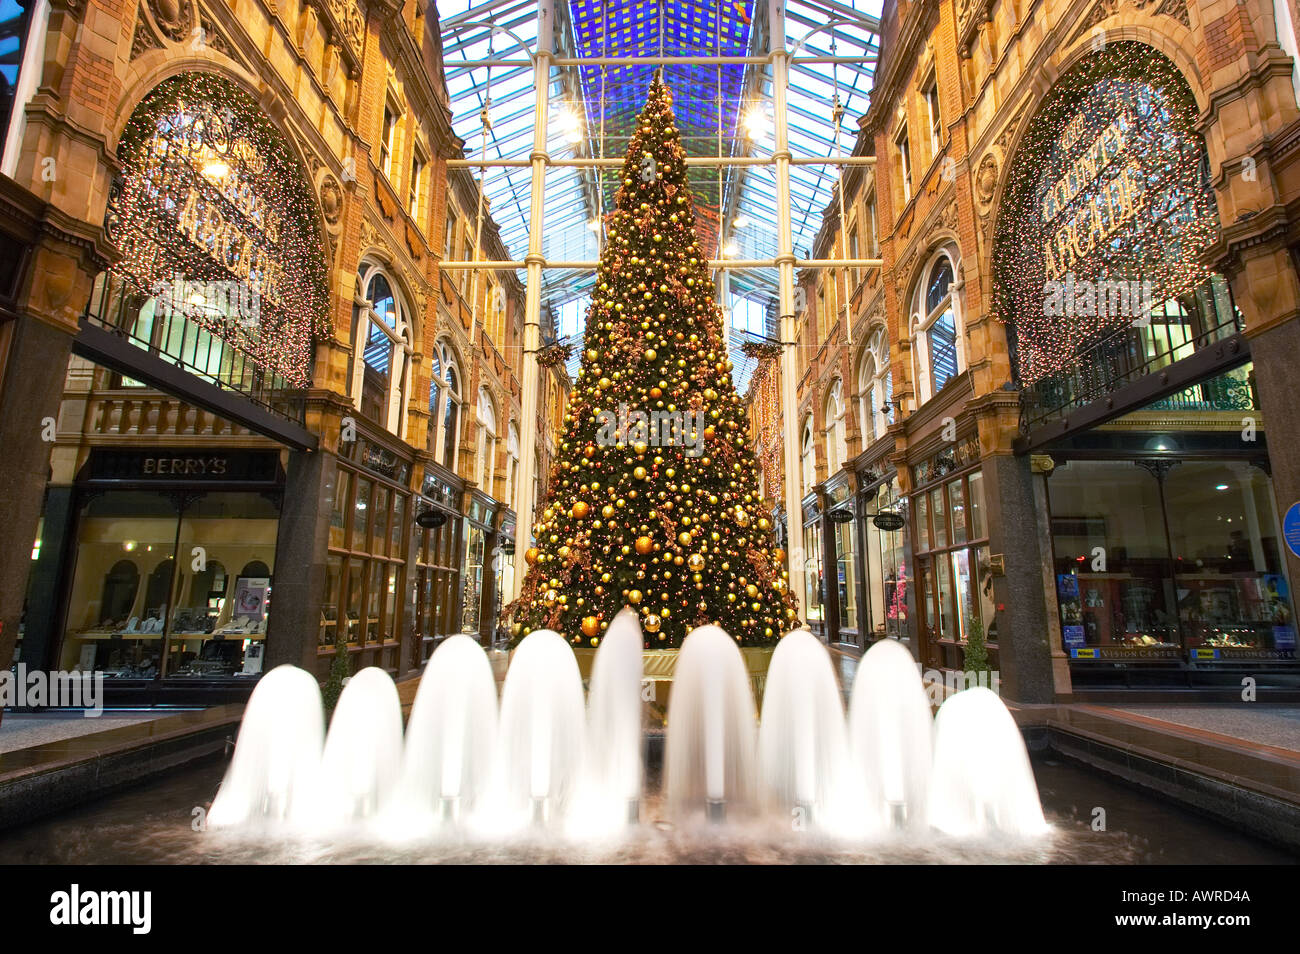 Fountain and Christmas tree in Victoria Quarter Shopping Arcade at ...